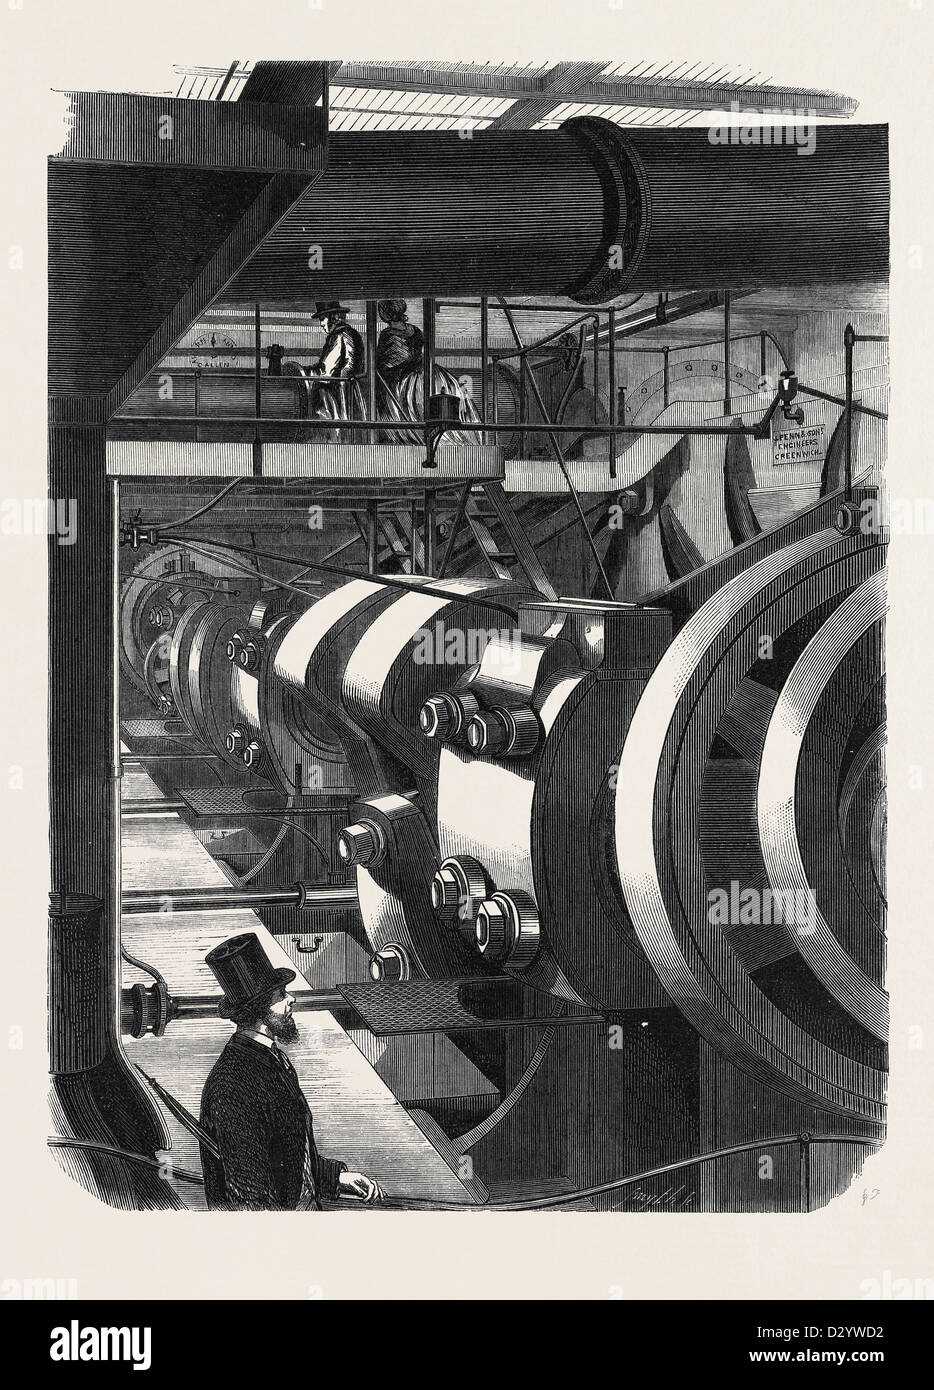 THE ENGINES OF H.M. STEAMFRIGATE WARRIOR - Stock Image